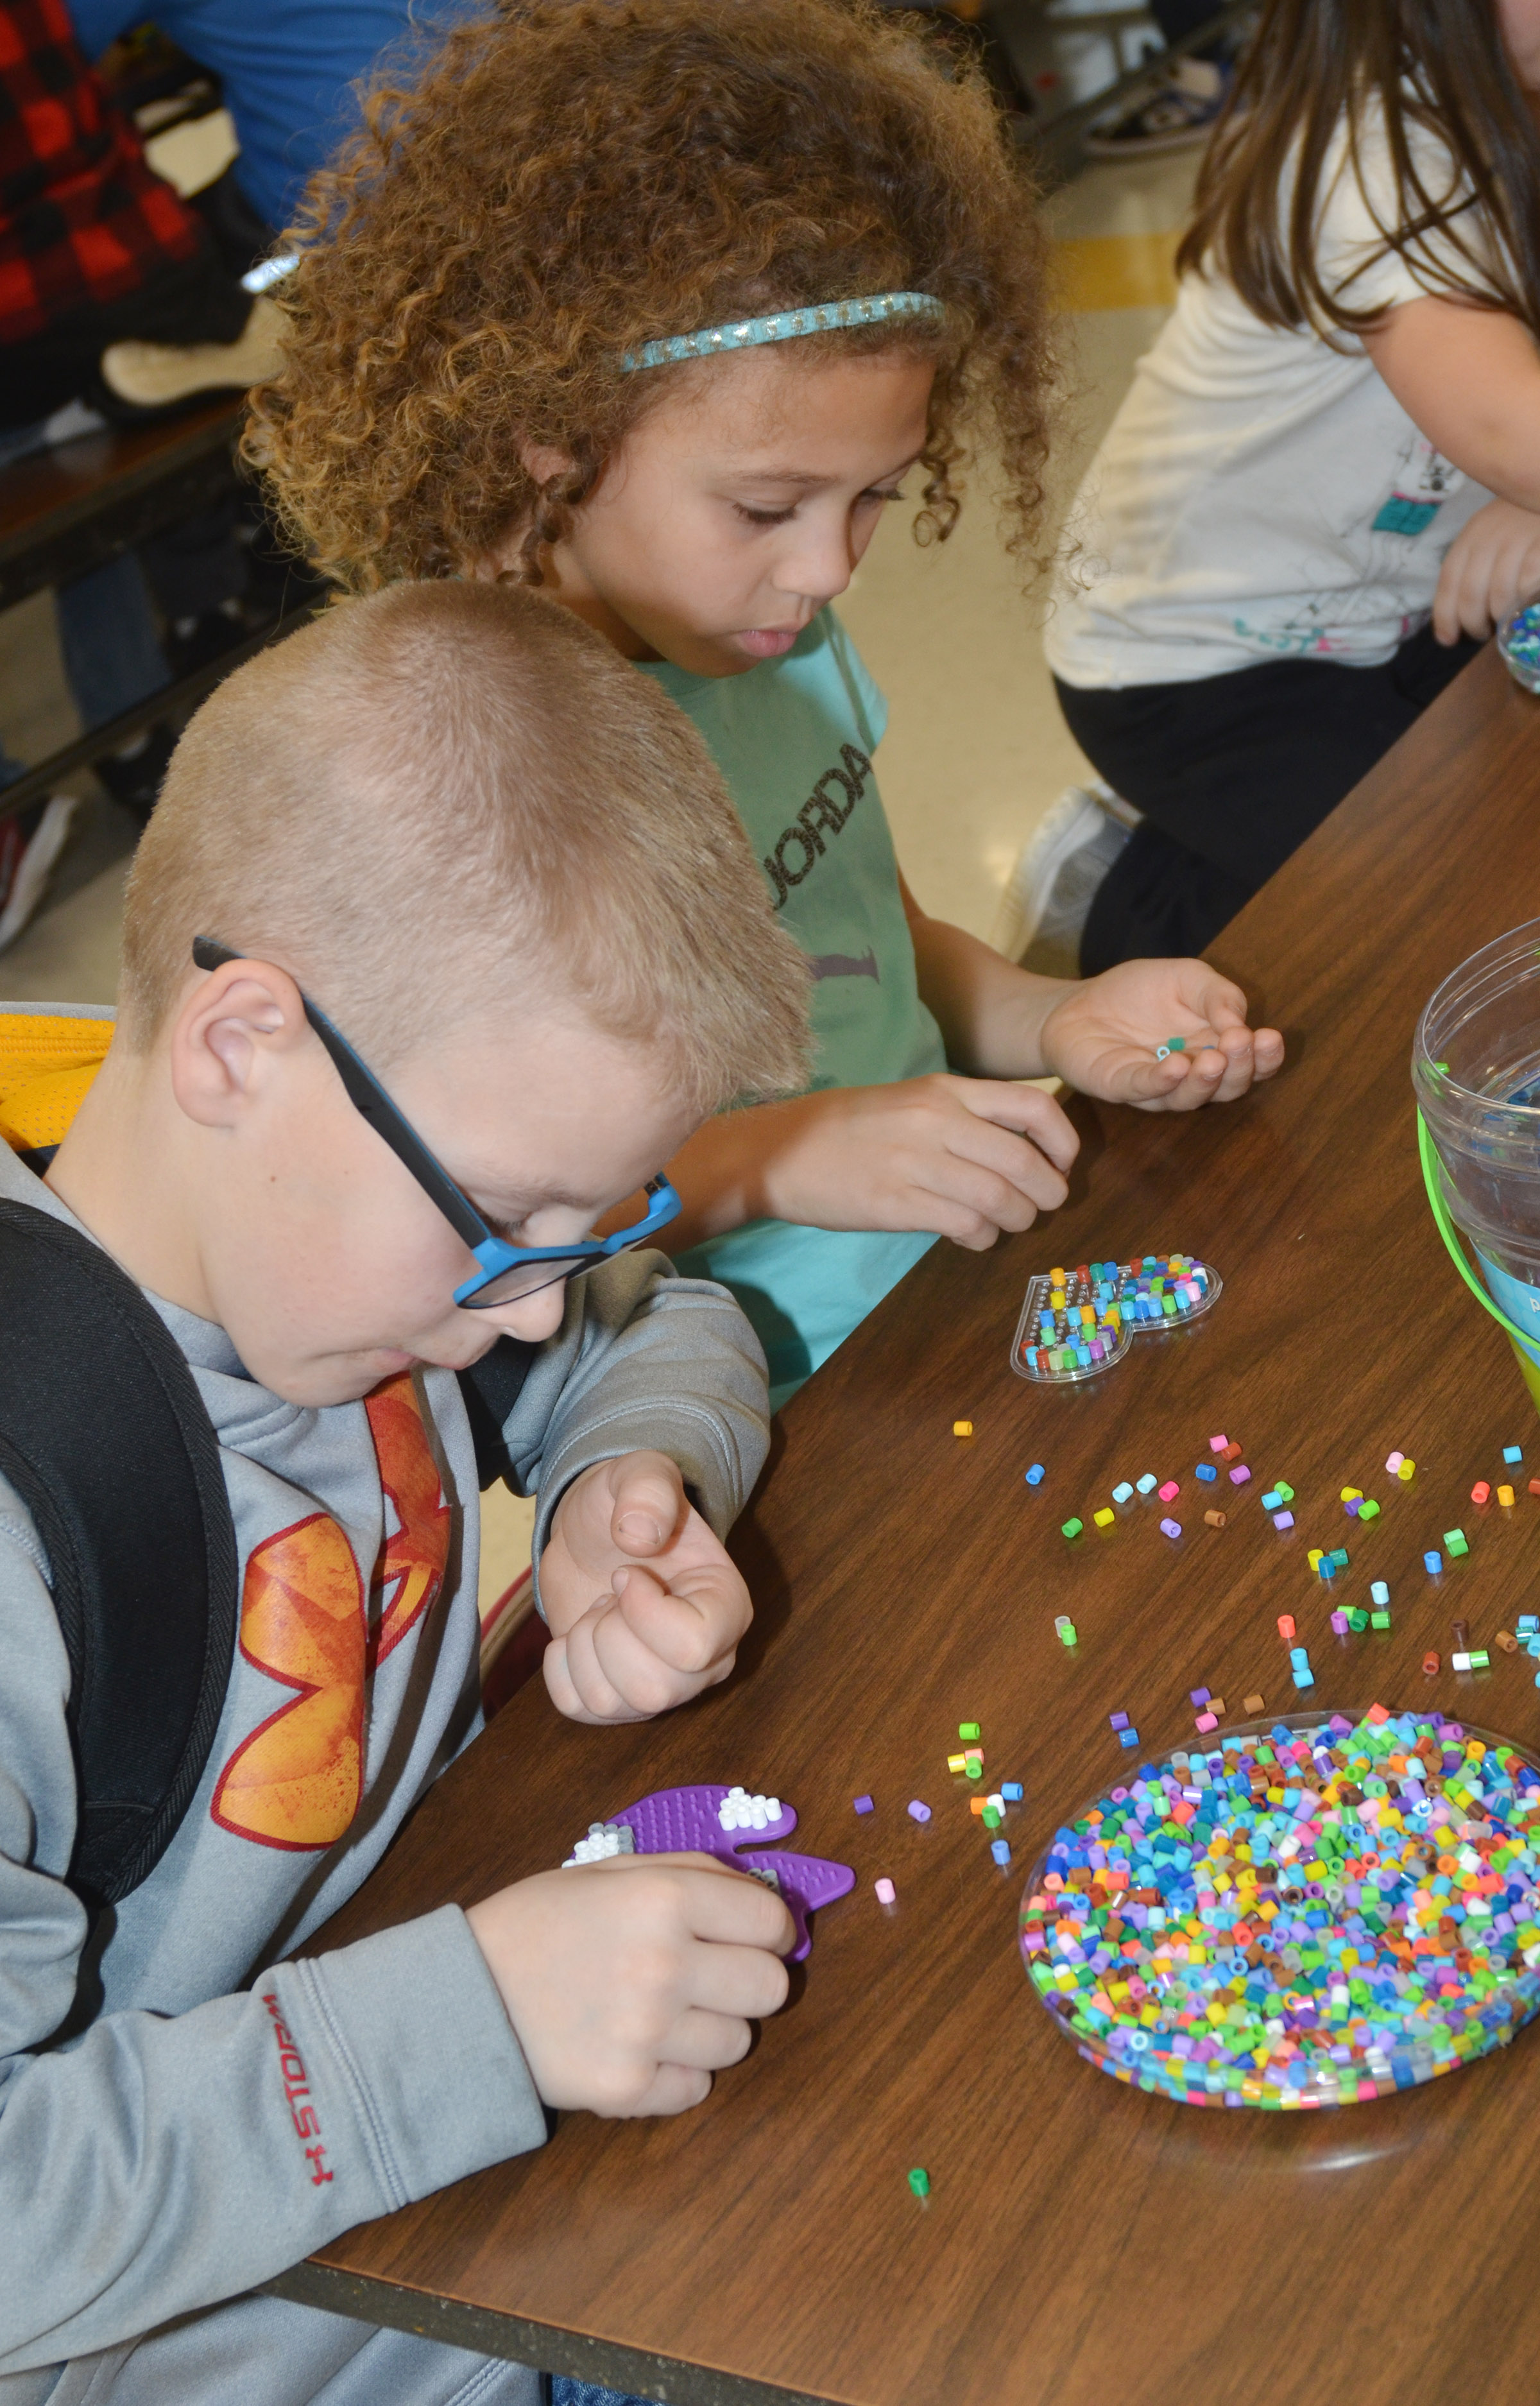 CES third-graders Ethan Irwin, at left, and Alicia Spaulding make designs with beads.